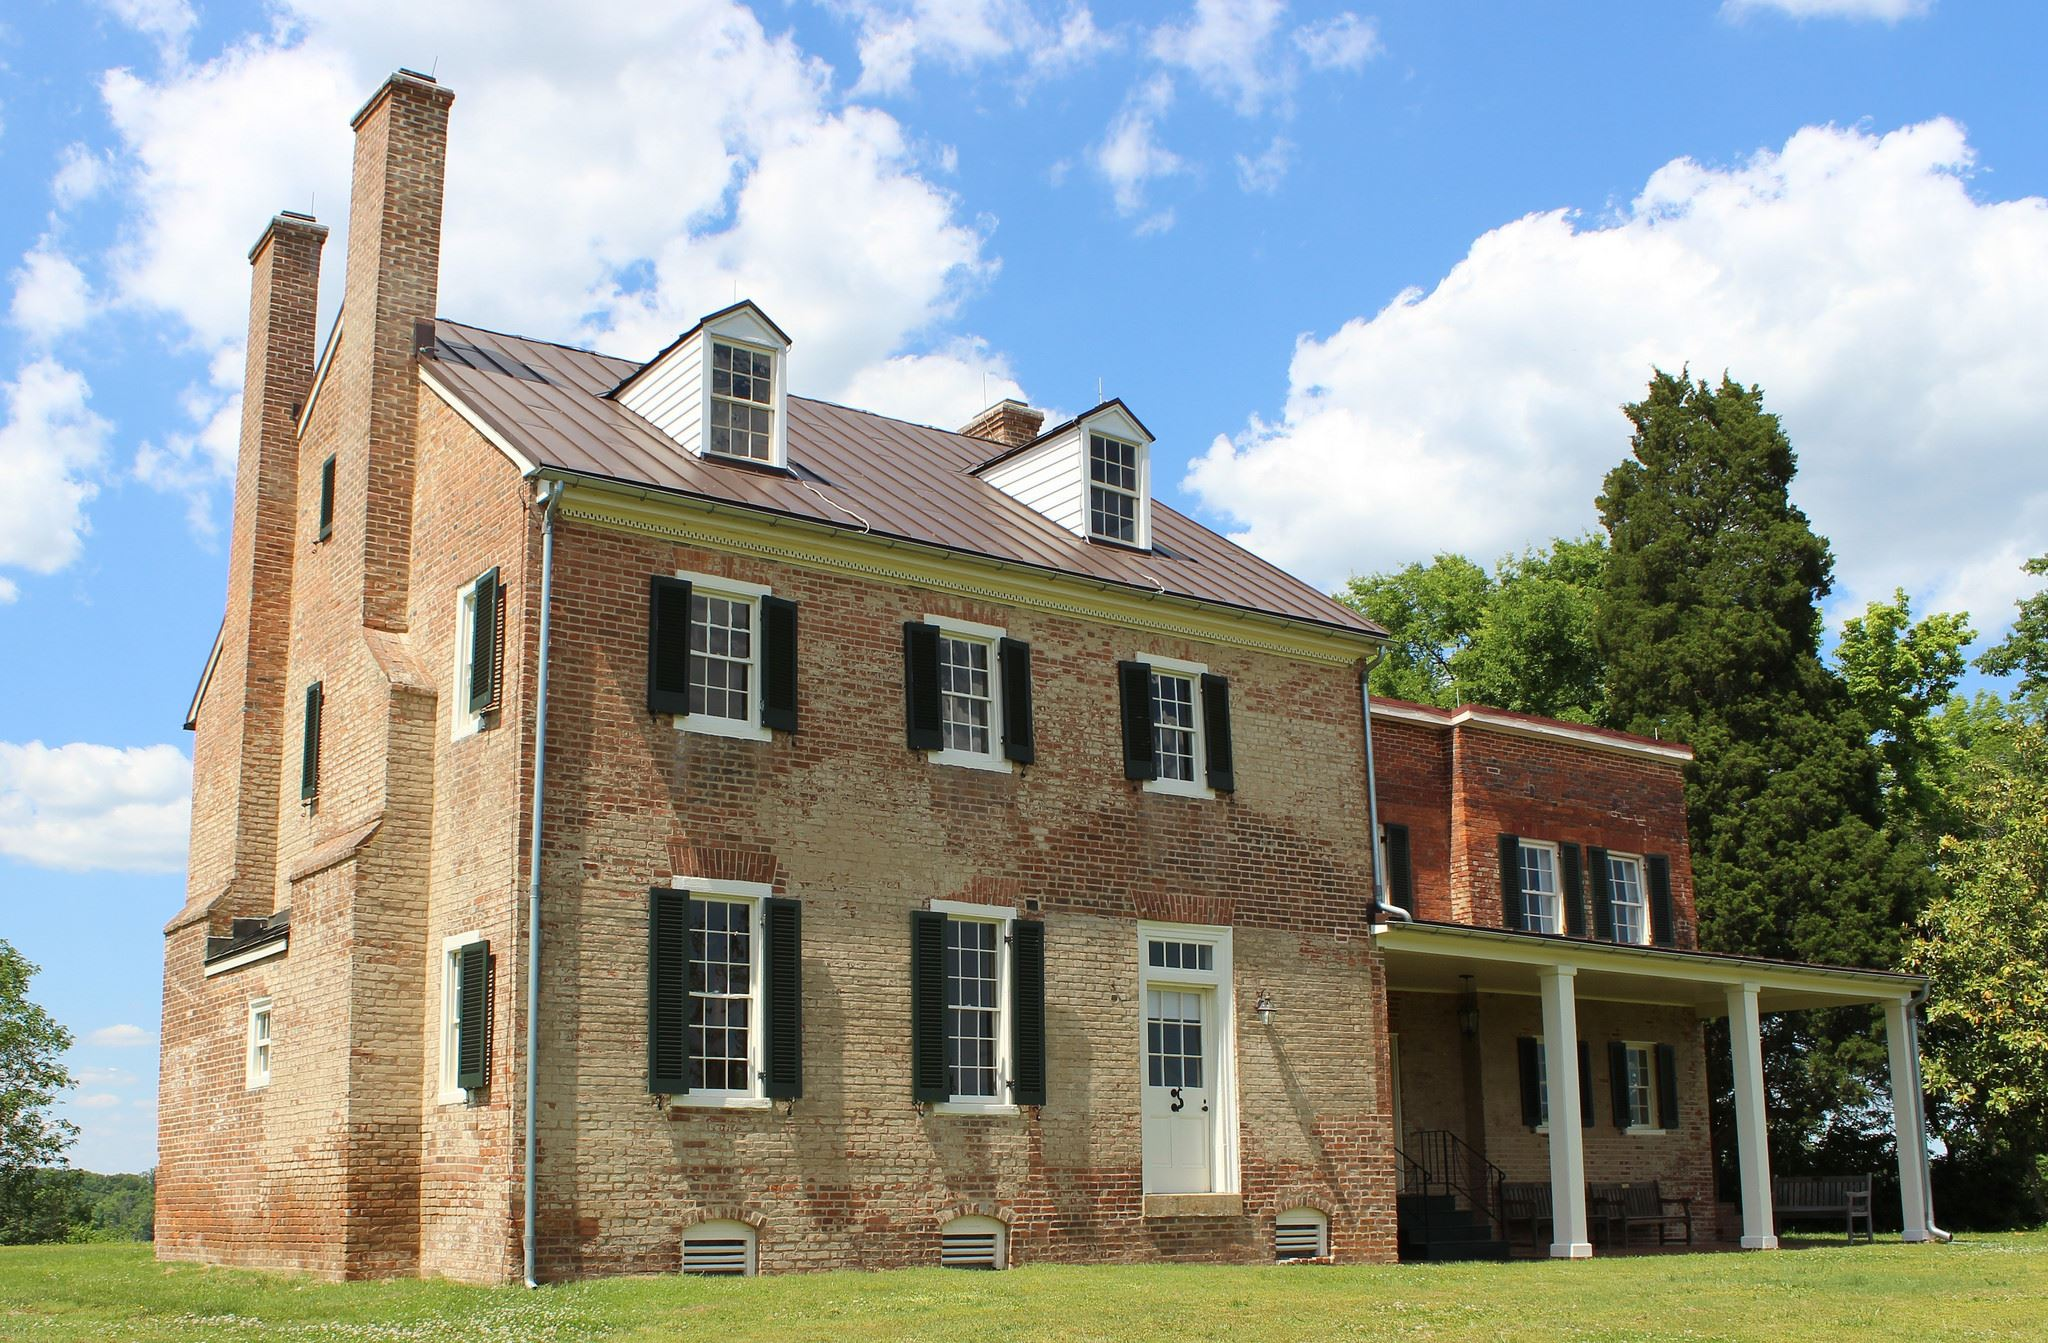 Mount Calvert Historical and Archaeological Park